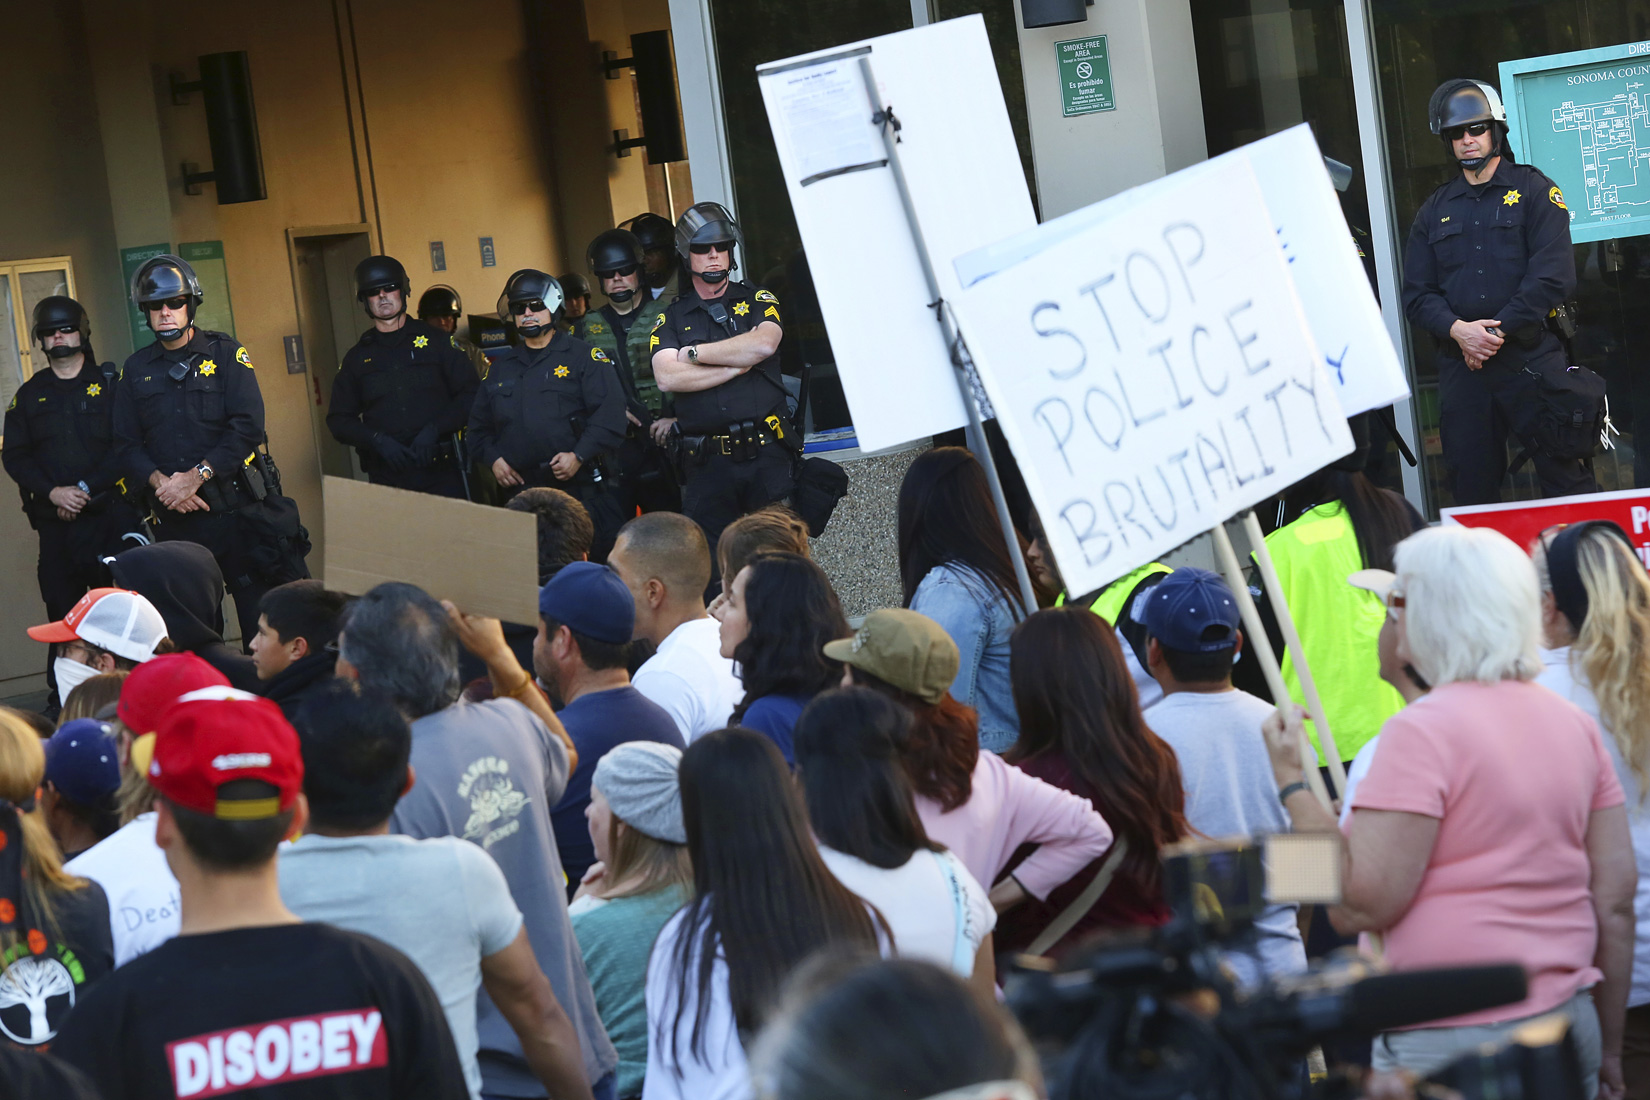 Sonoma County Sheriff officers in riot gear protect the County of Sonoma Office of the District Attorney during a protest over death of Andy Lopez in Santa Rosa on Tuesday, November 5, 2013. (Conner Jay/The Press Democrat)